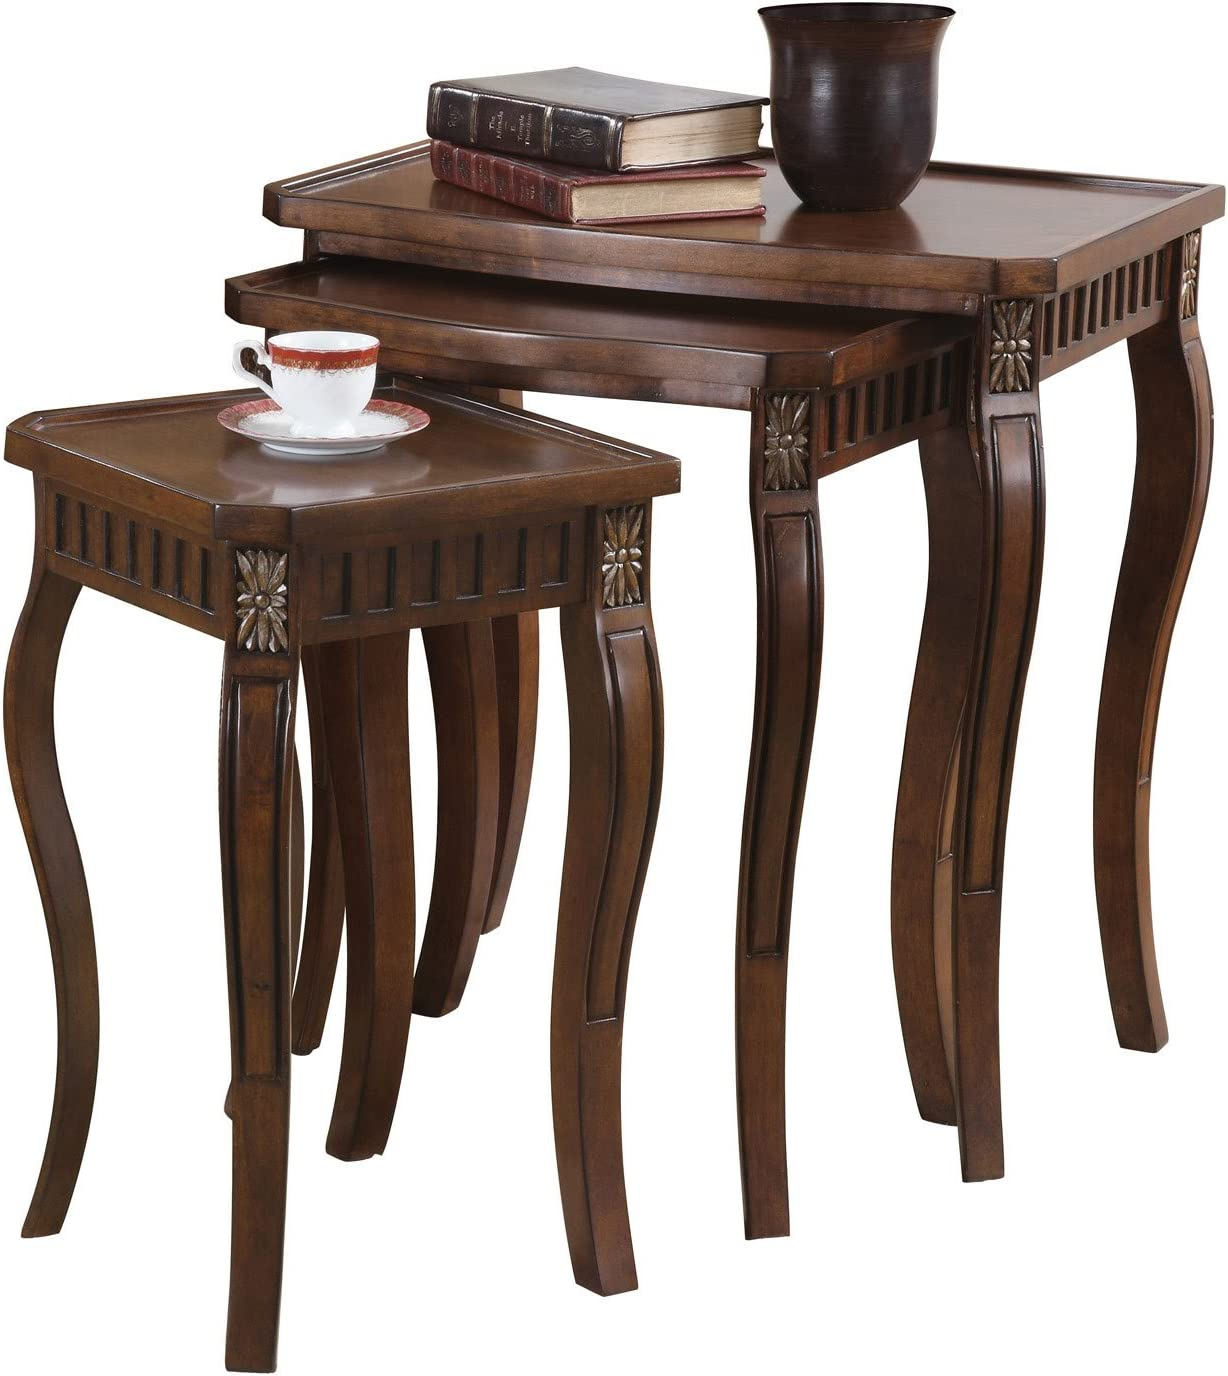 3-piece Curved Leg Nesting Tables Warm Brown: Furniture & Decor